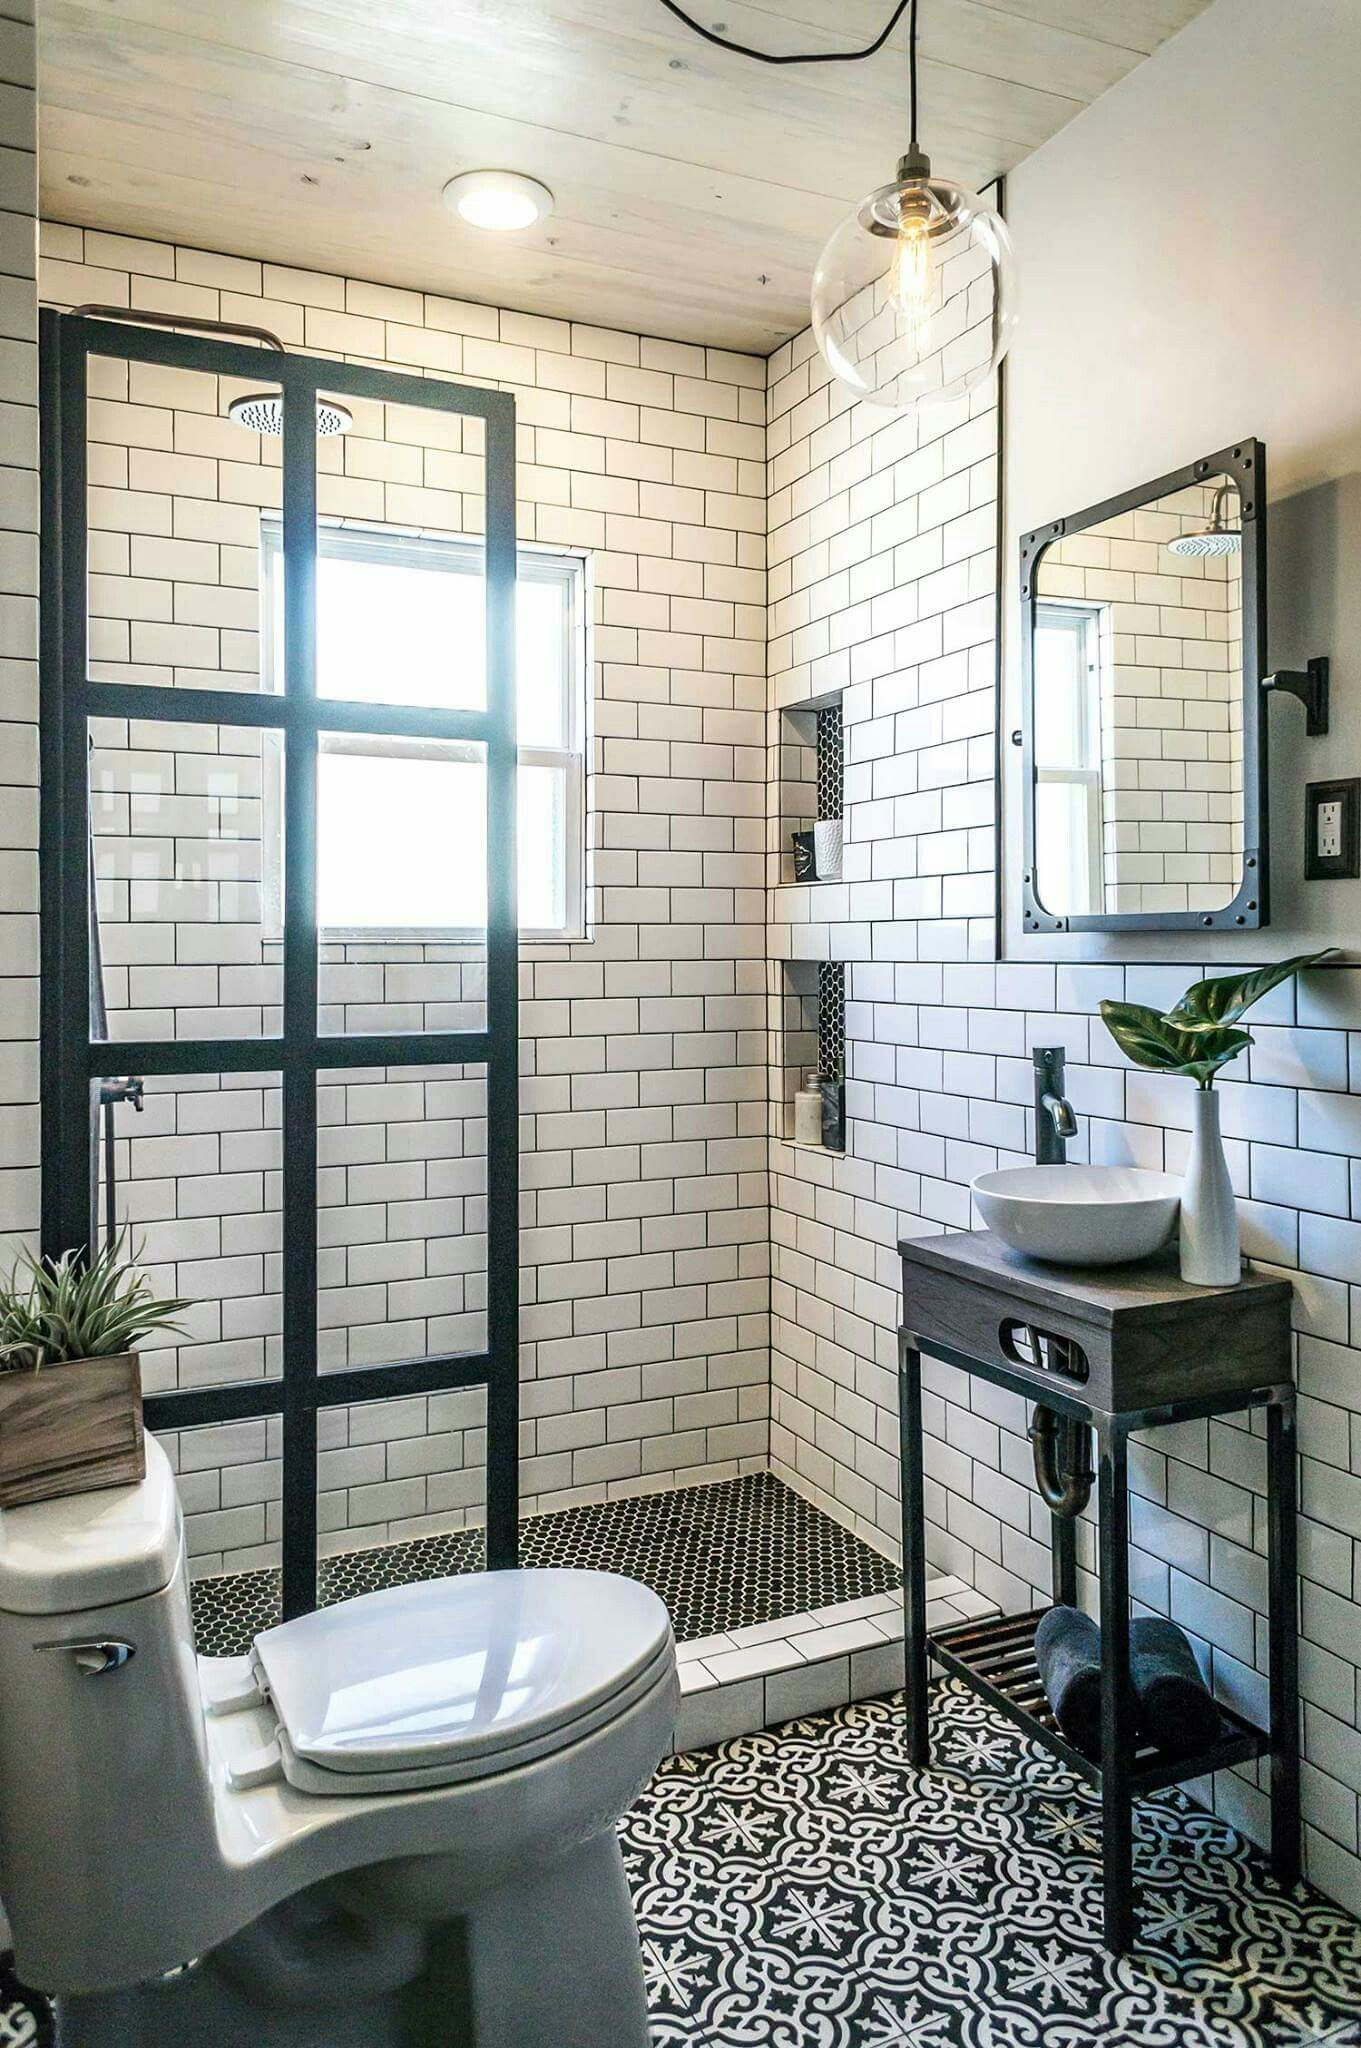 Black And White Bathroom Simple Elegant Timeless Can Add Color With Accessories Plants Add Li Small Bathroom Remodel Tiny House Bathroom Bathroom Renovations